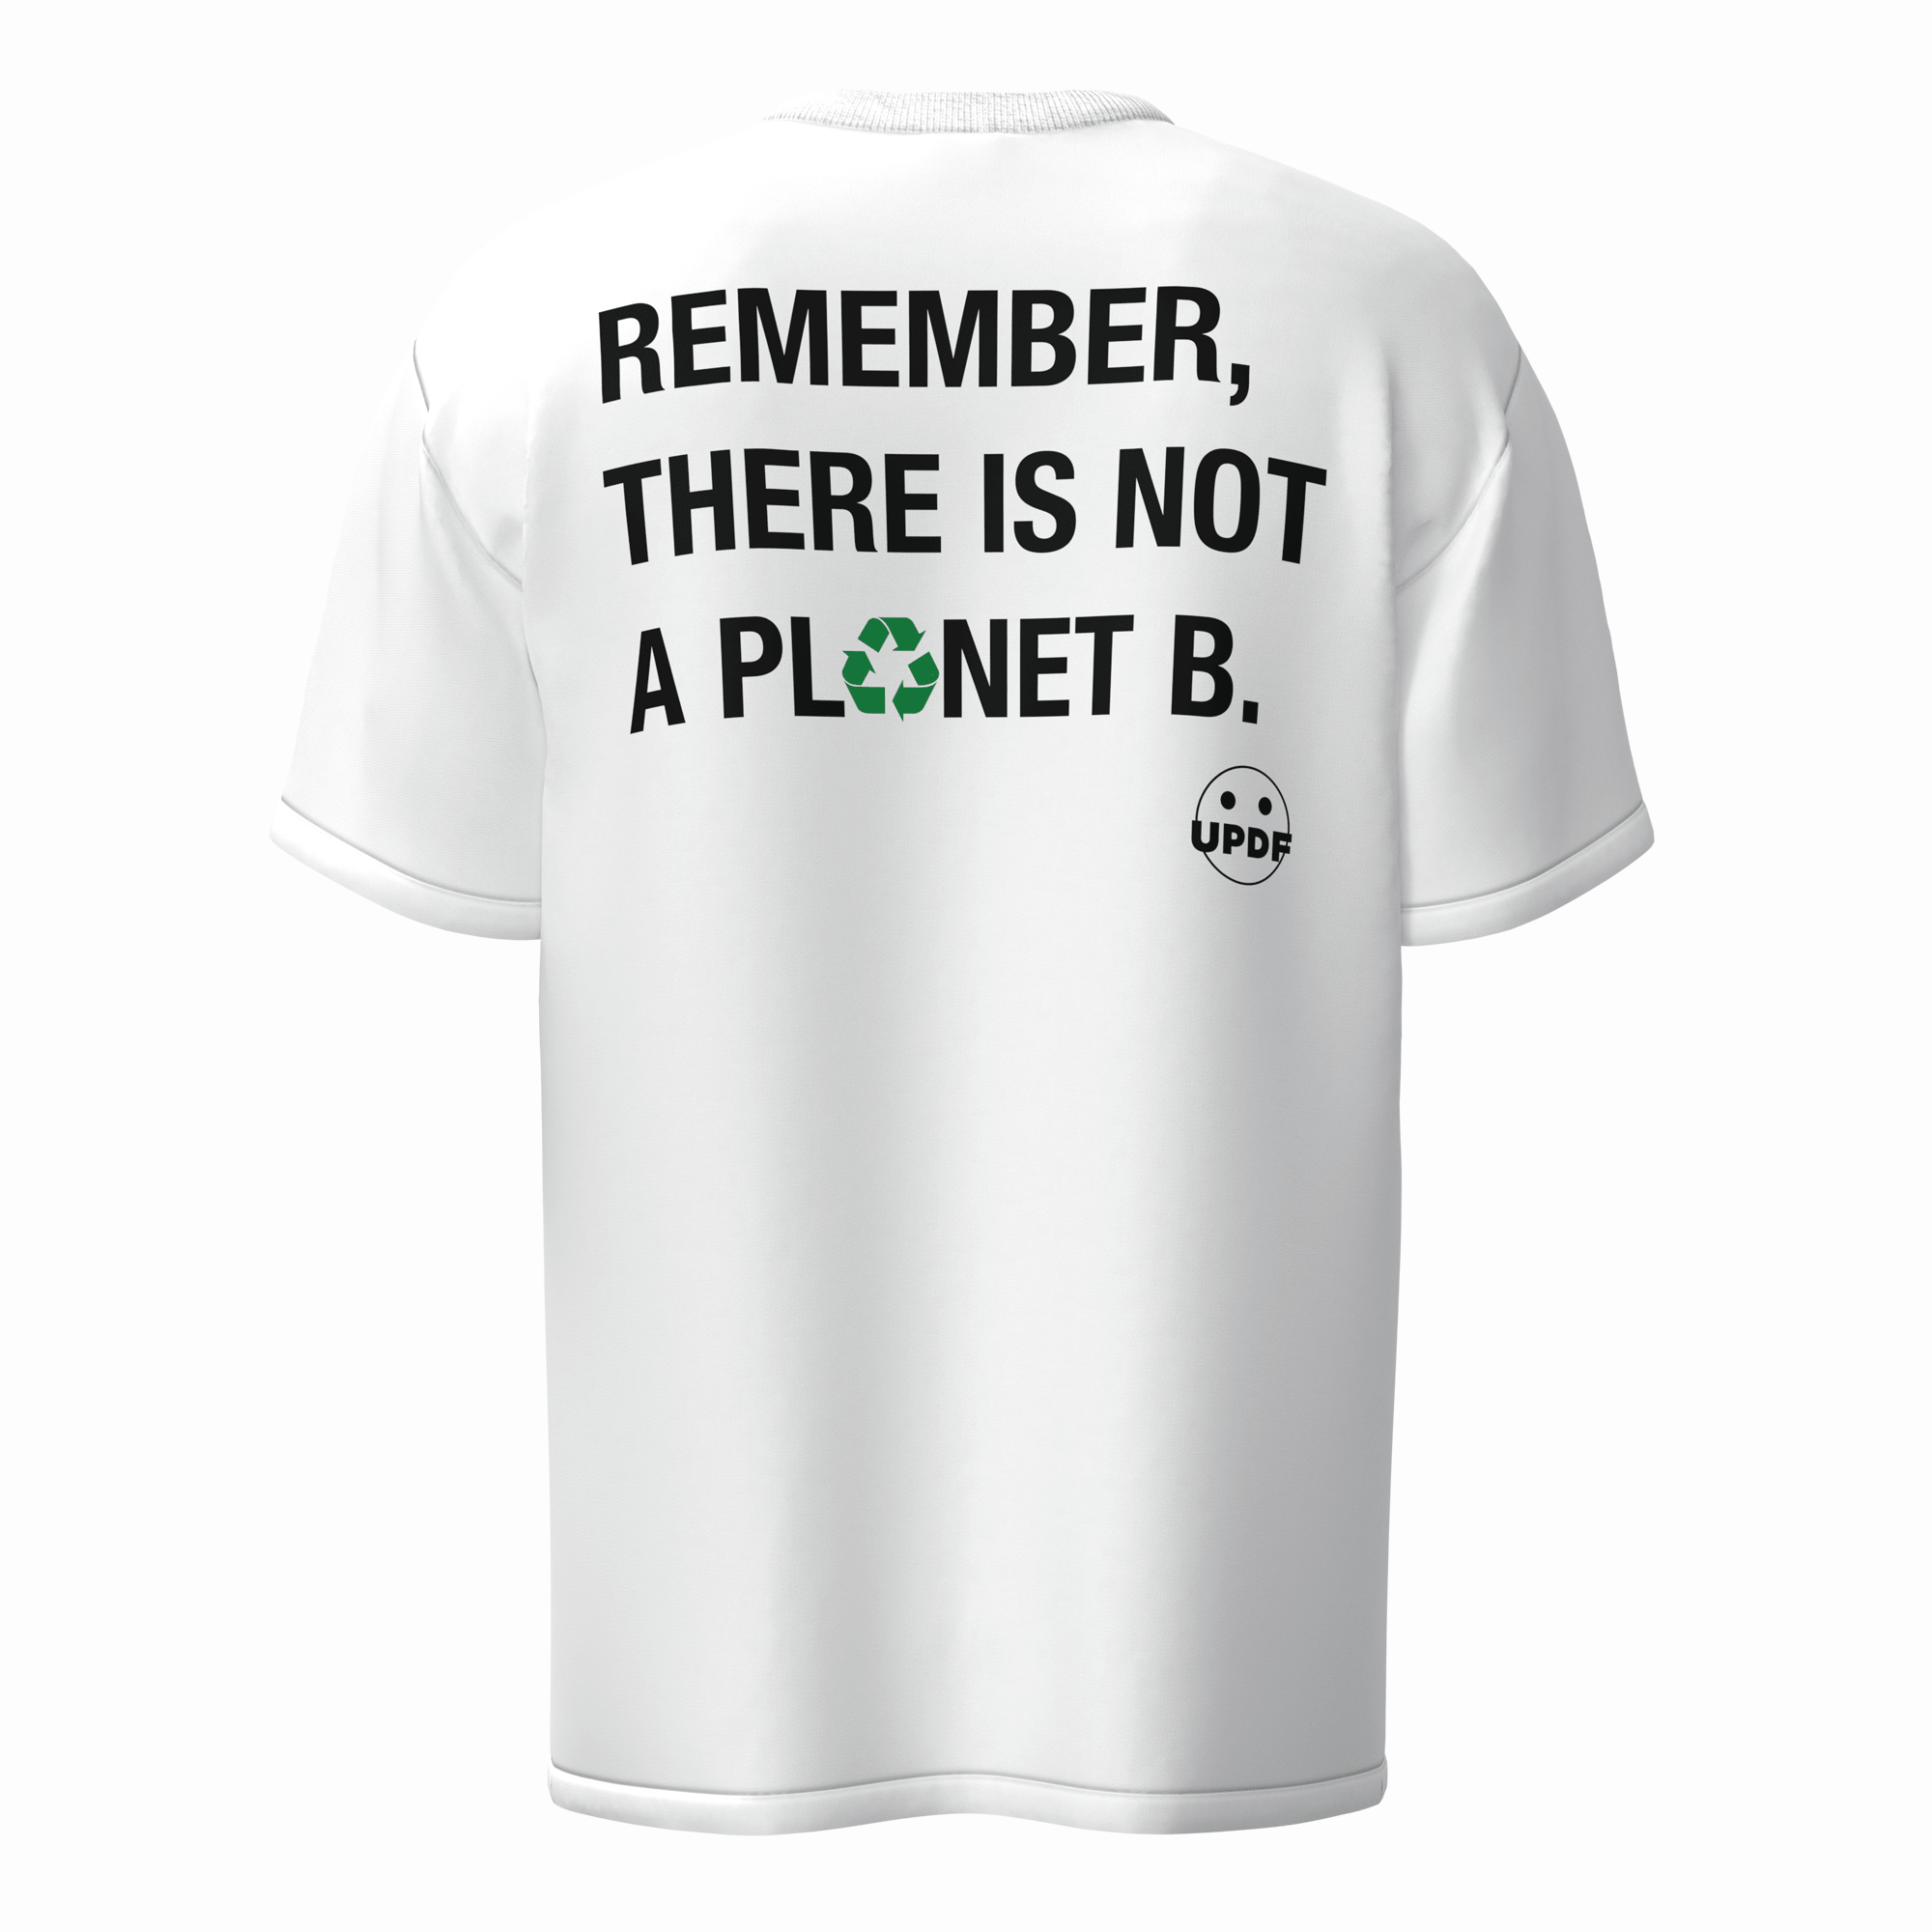 Picture of Updf | Planet B Tee